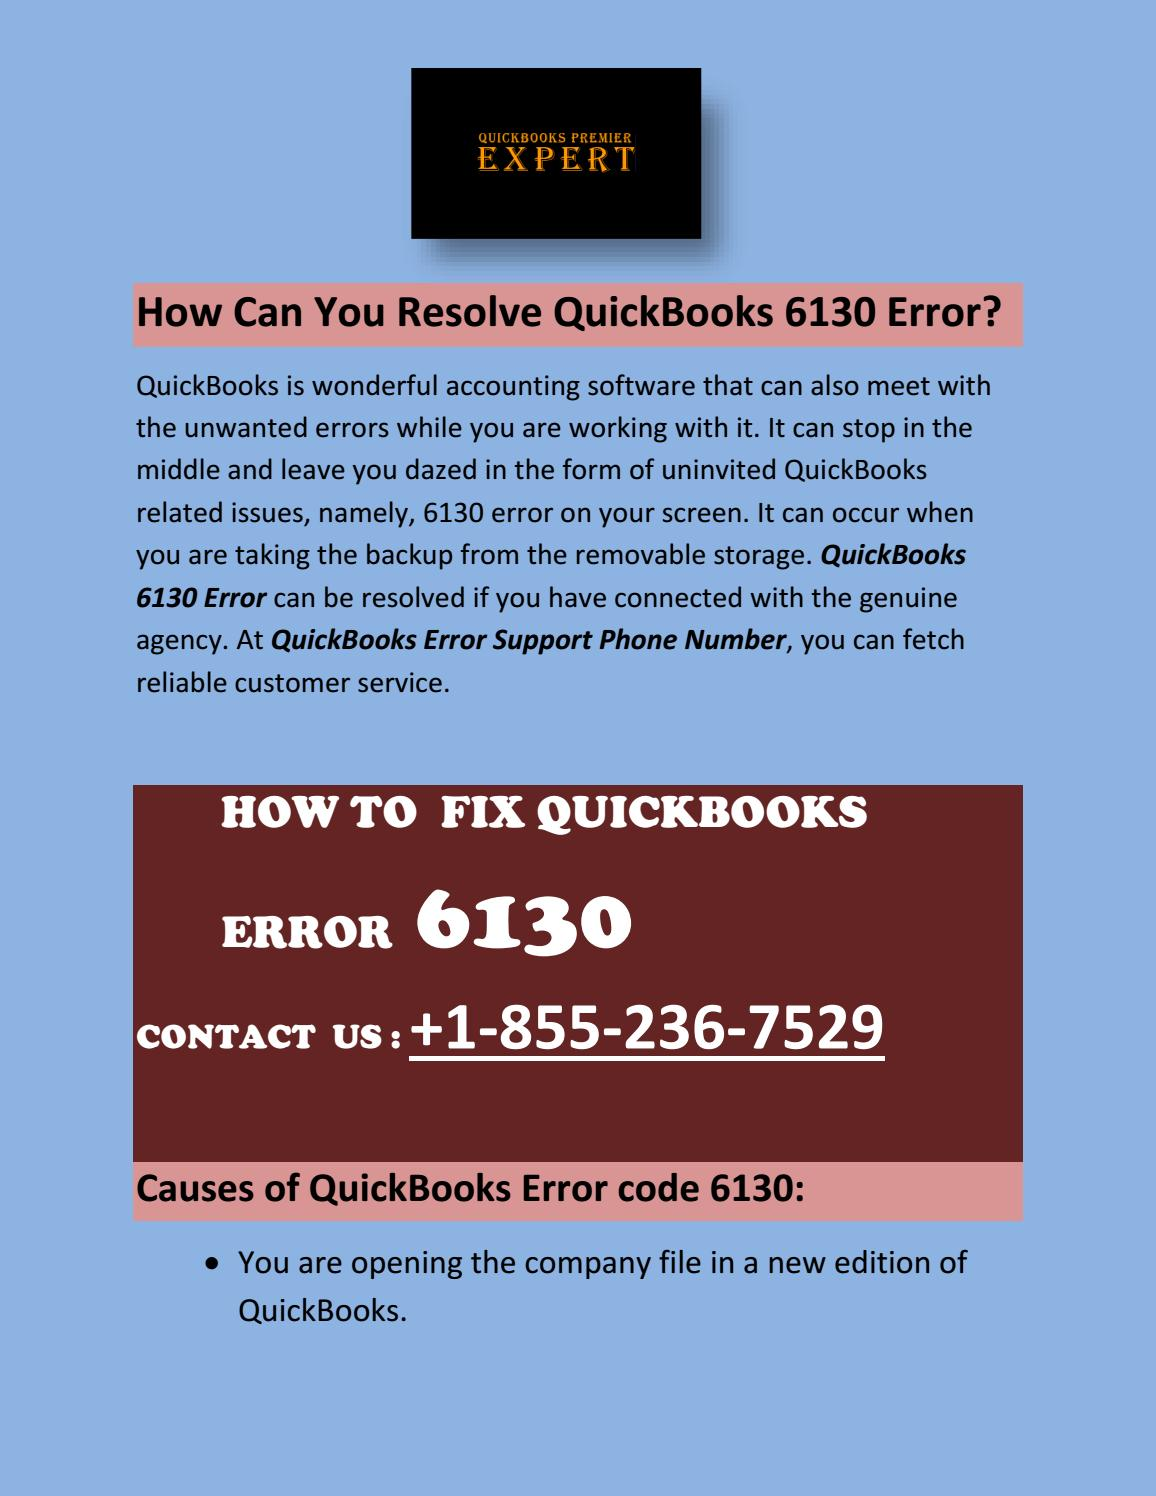 How Can You Resolve QuickBooks 6130 Error? by Susan Sandoval - Issuu